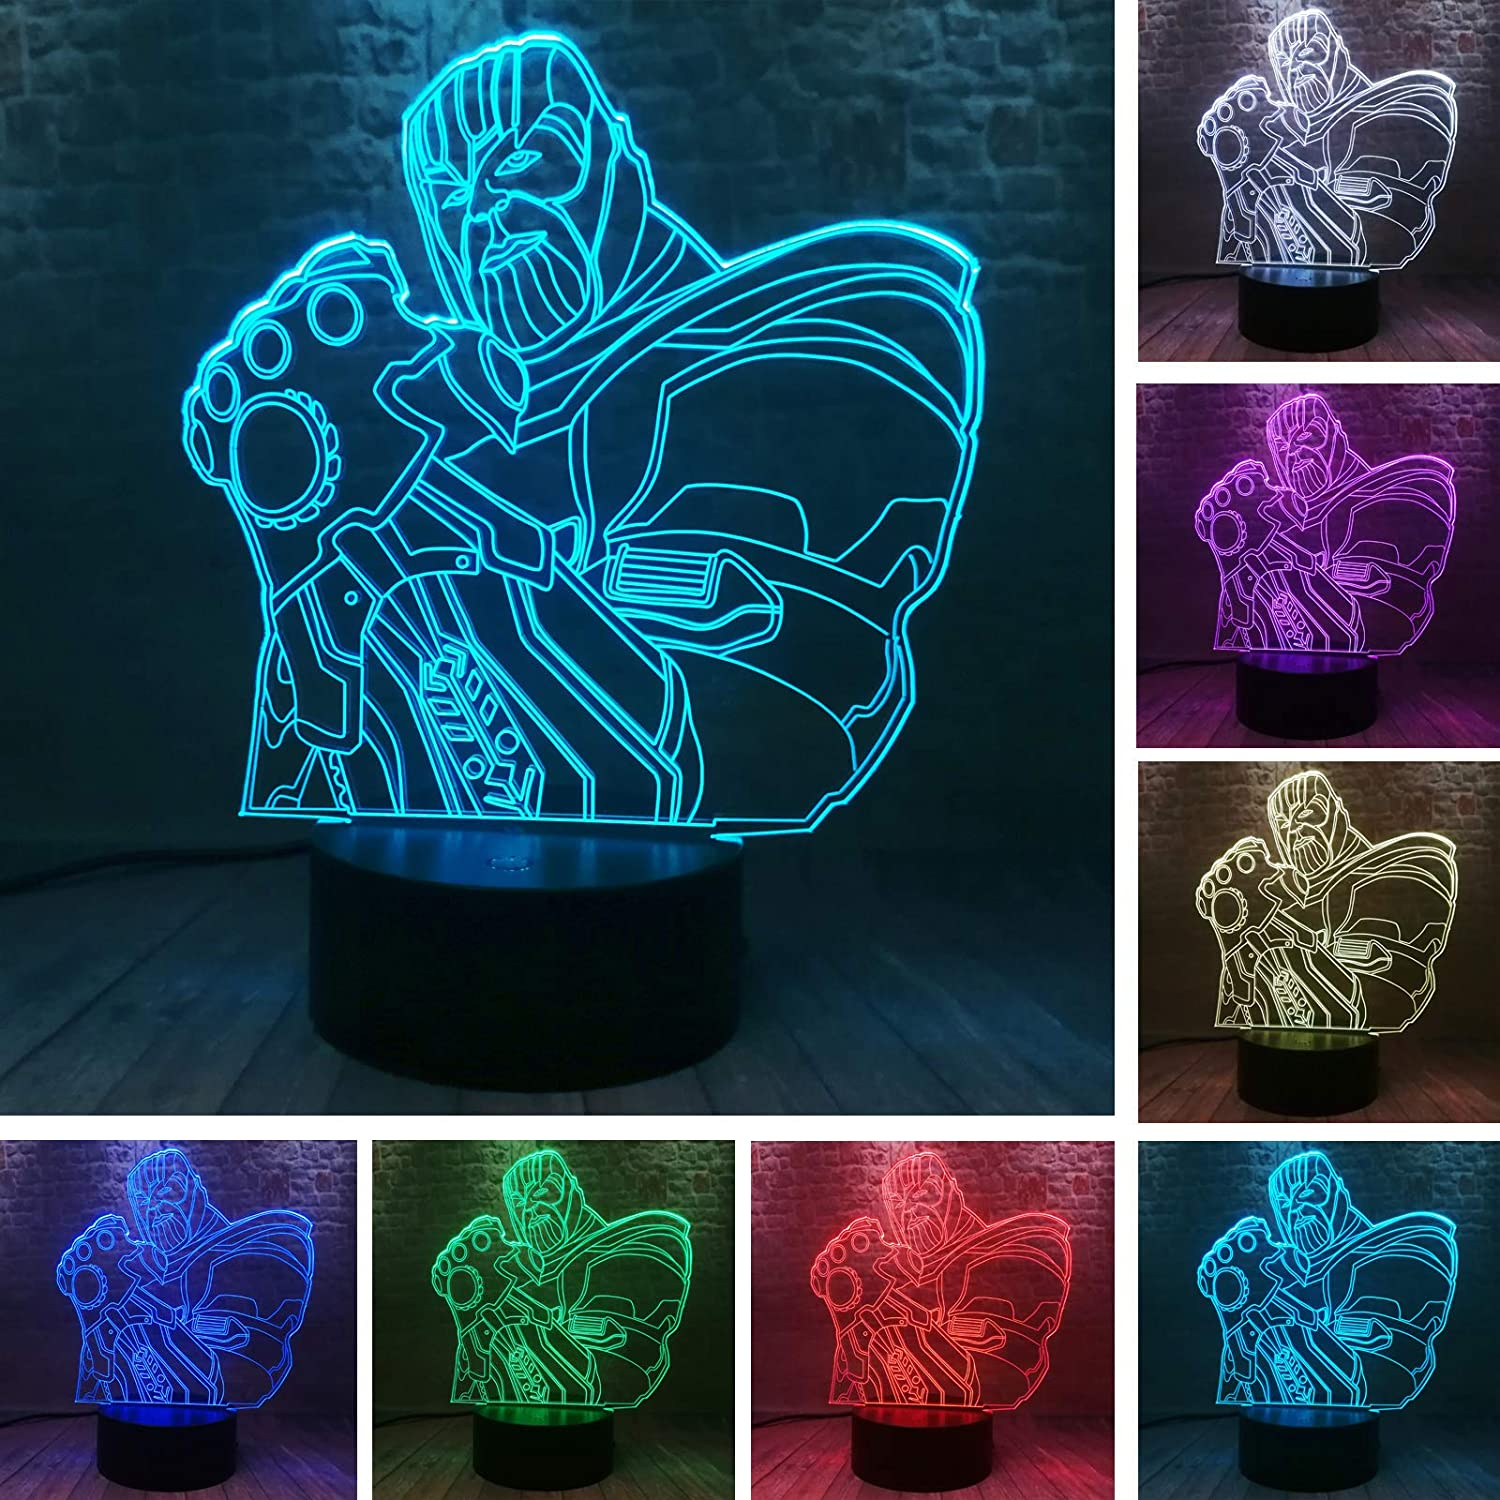 Fanrui Avengers Endgame Thanos Infinity Gauntlet Lamp 7 Colors Change Smart Touch with IR Controller Led Night Light Flash Display Movie Marvel Thanos Figure Toys Boys Bedroom Home Table Decor Gifts